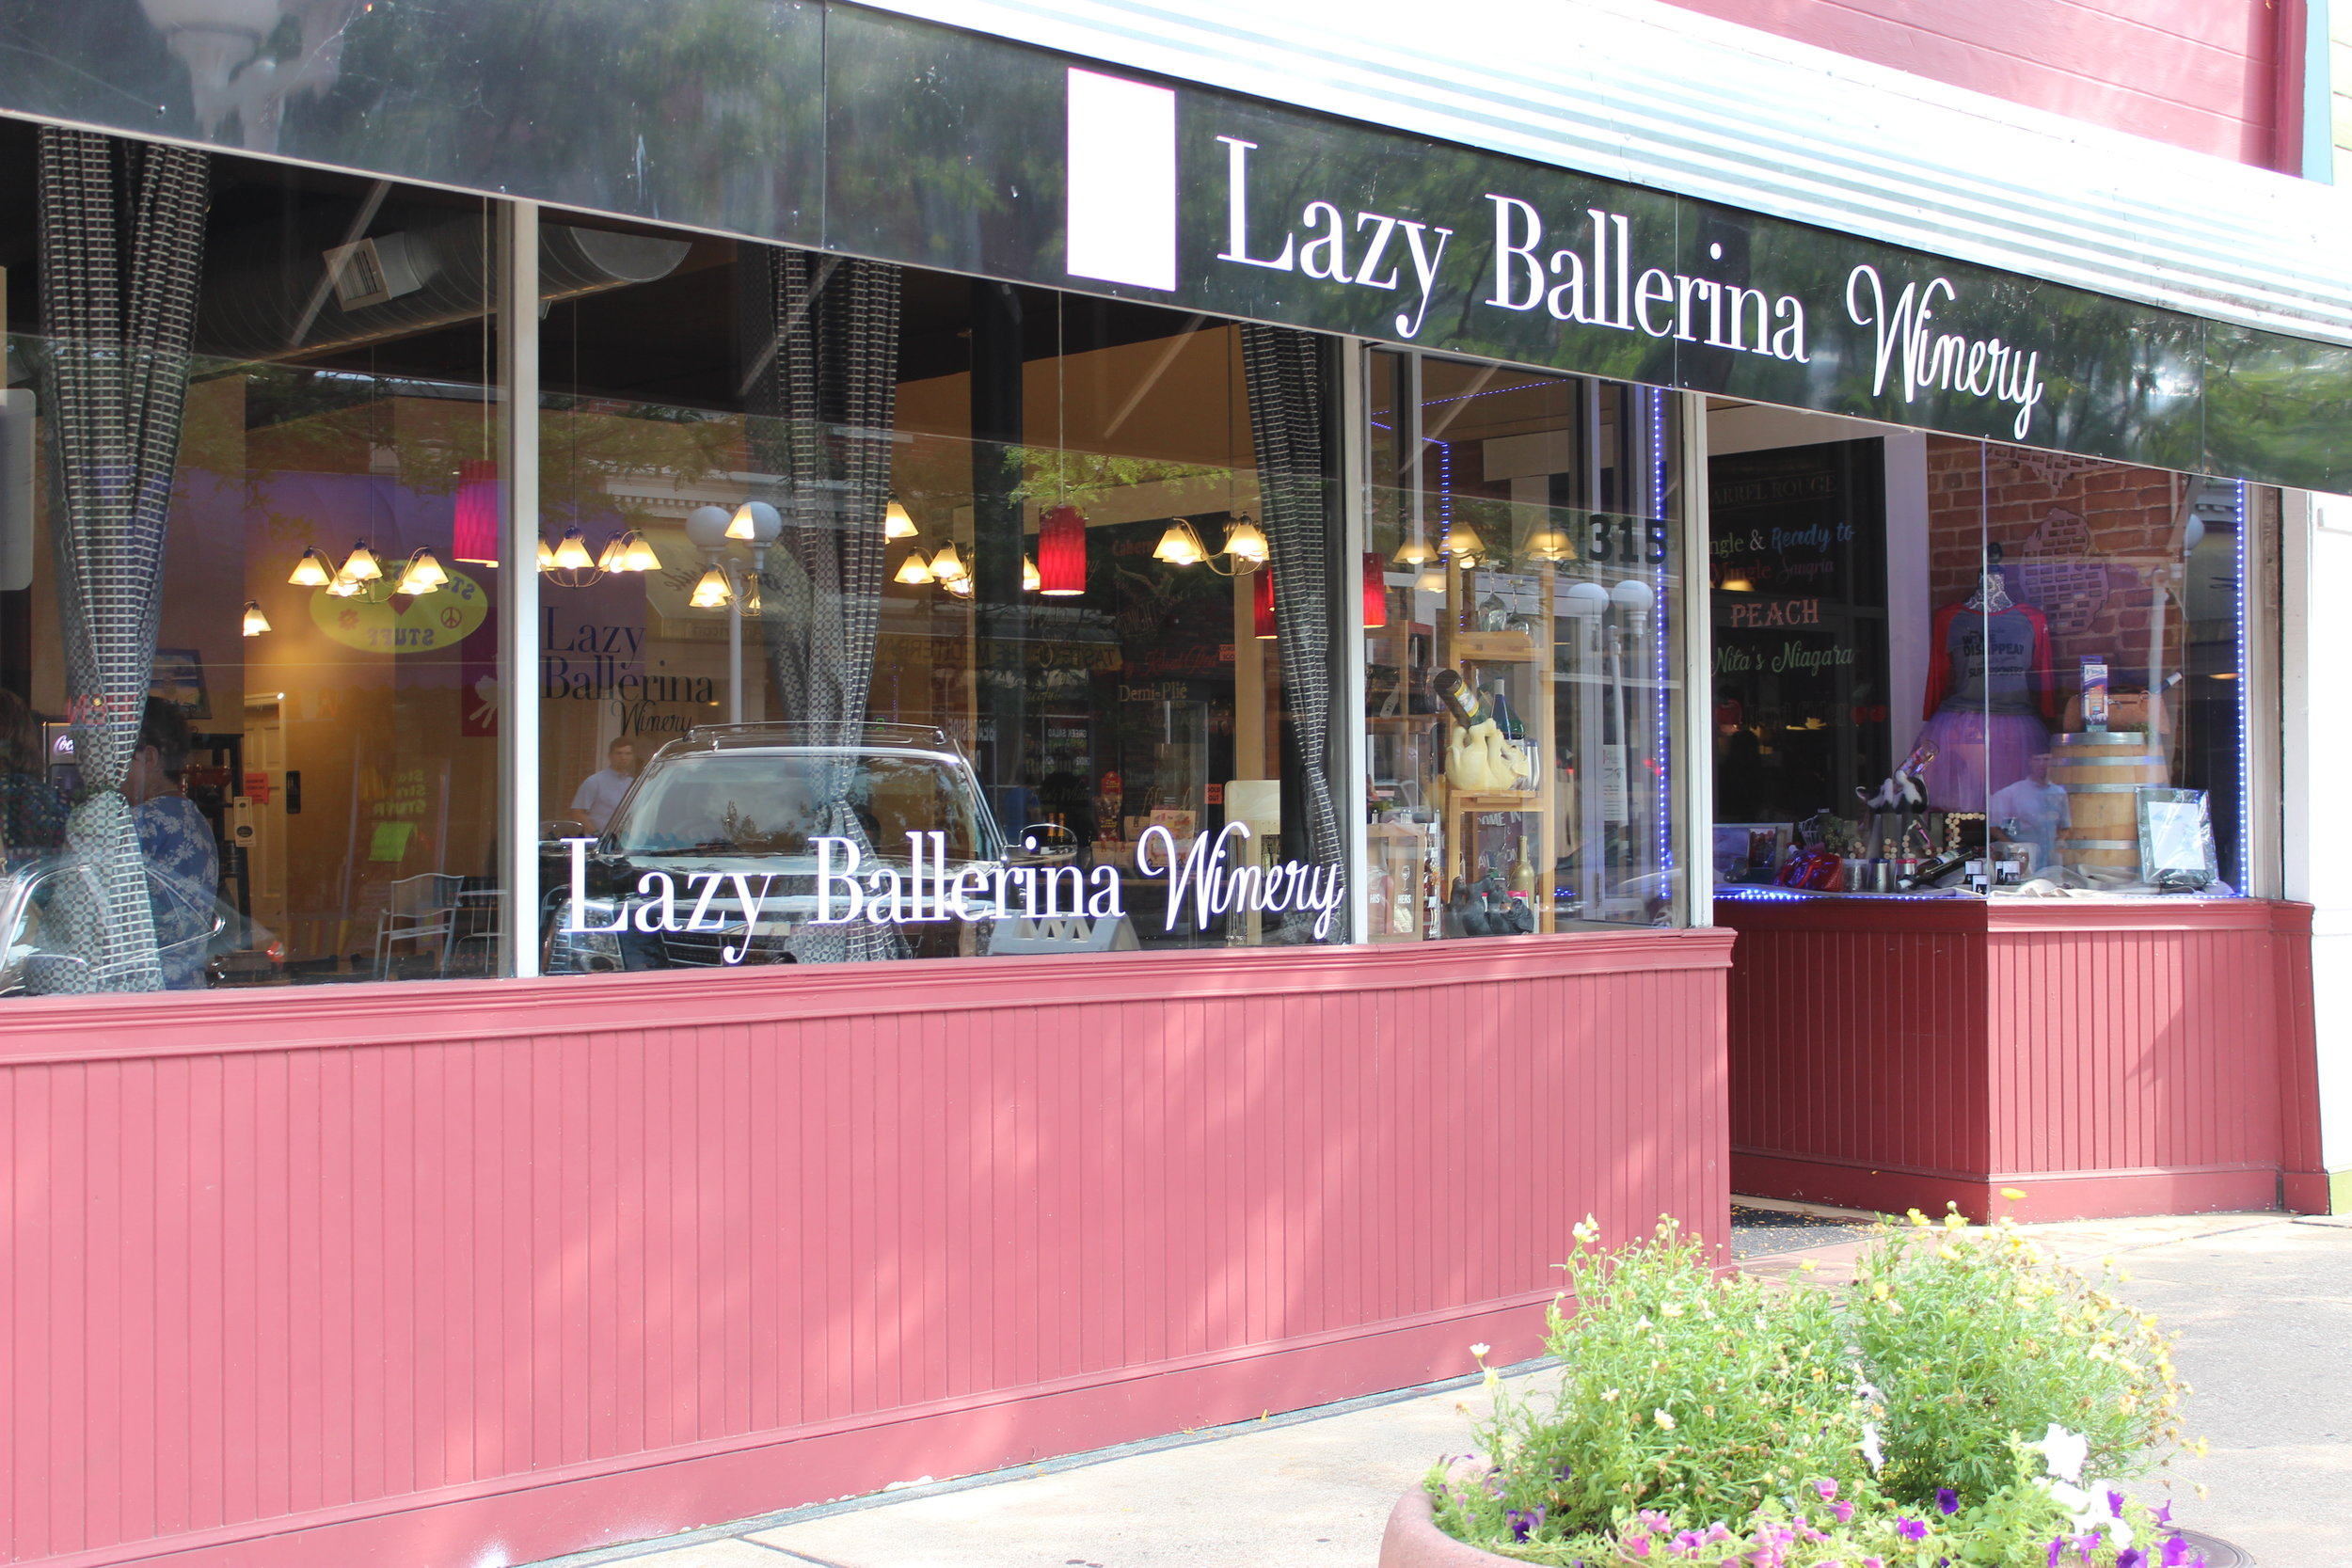 Lazy Ballerina Winery